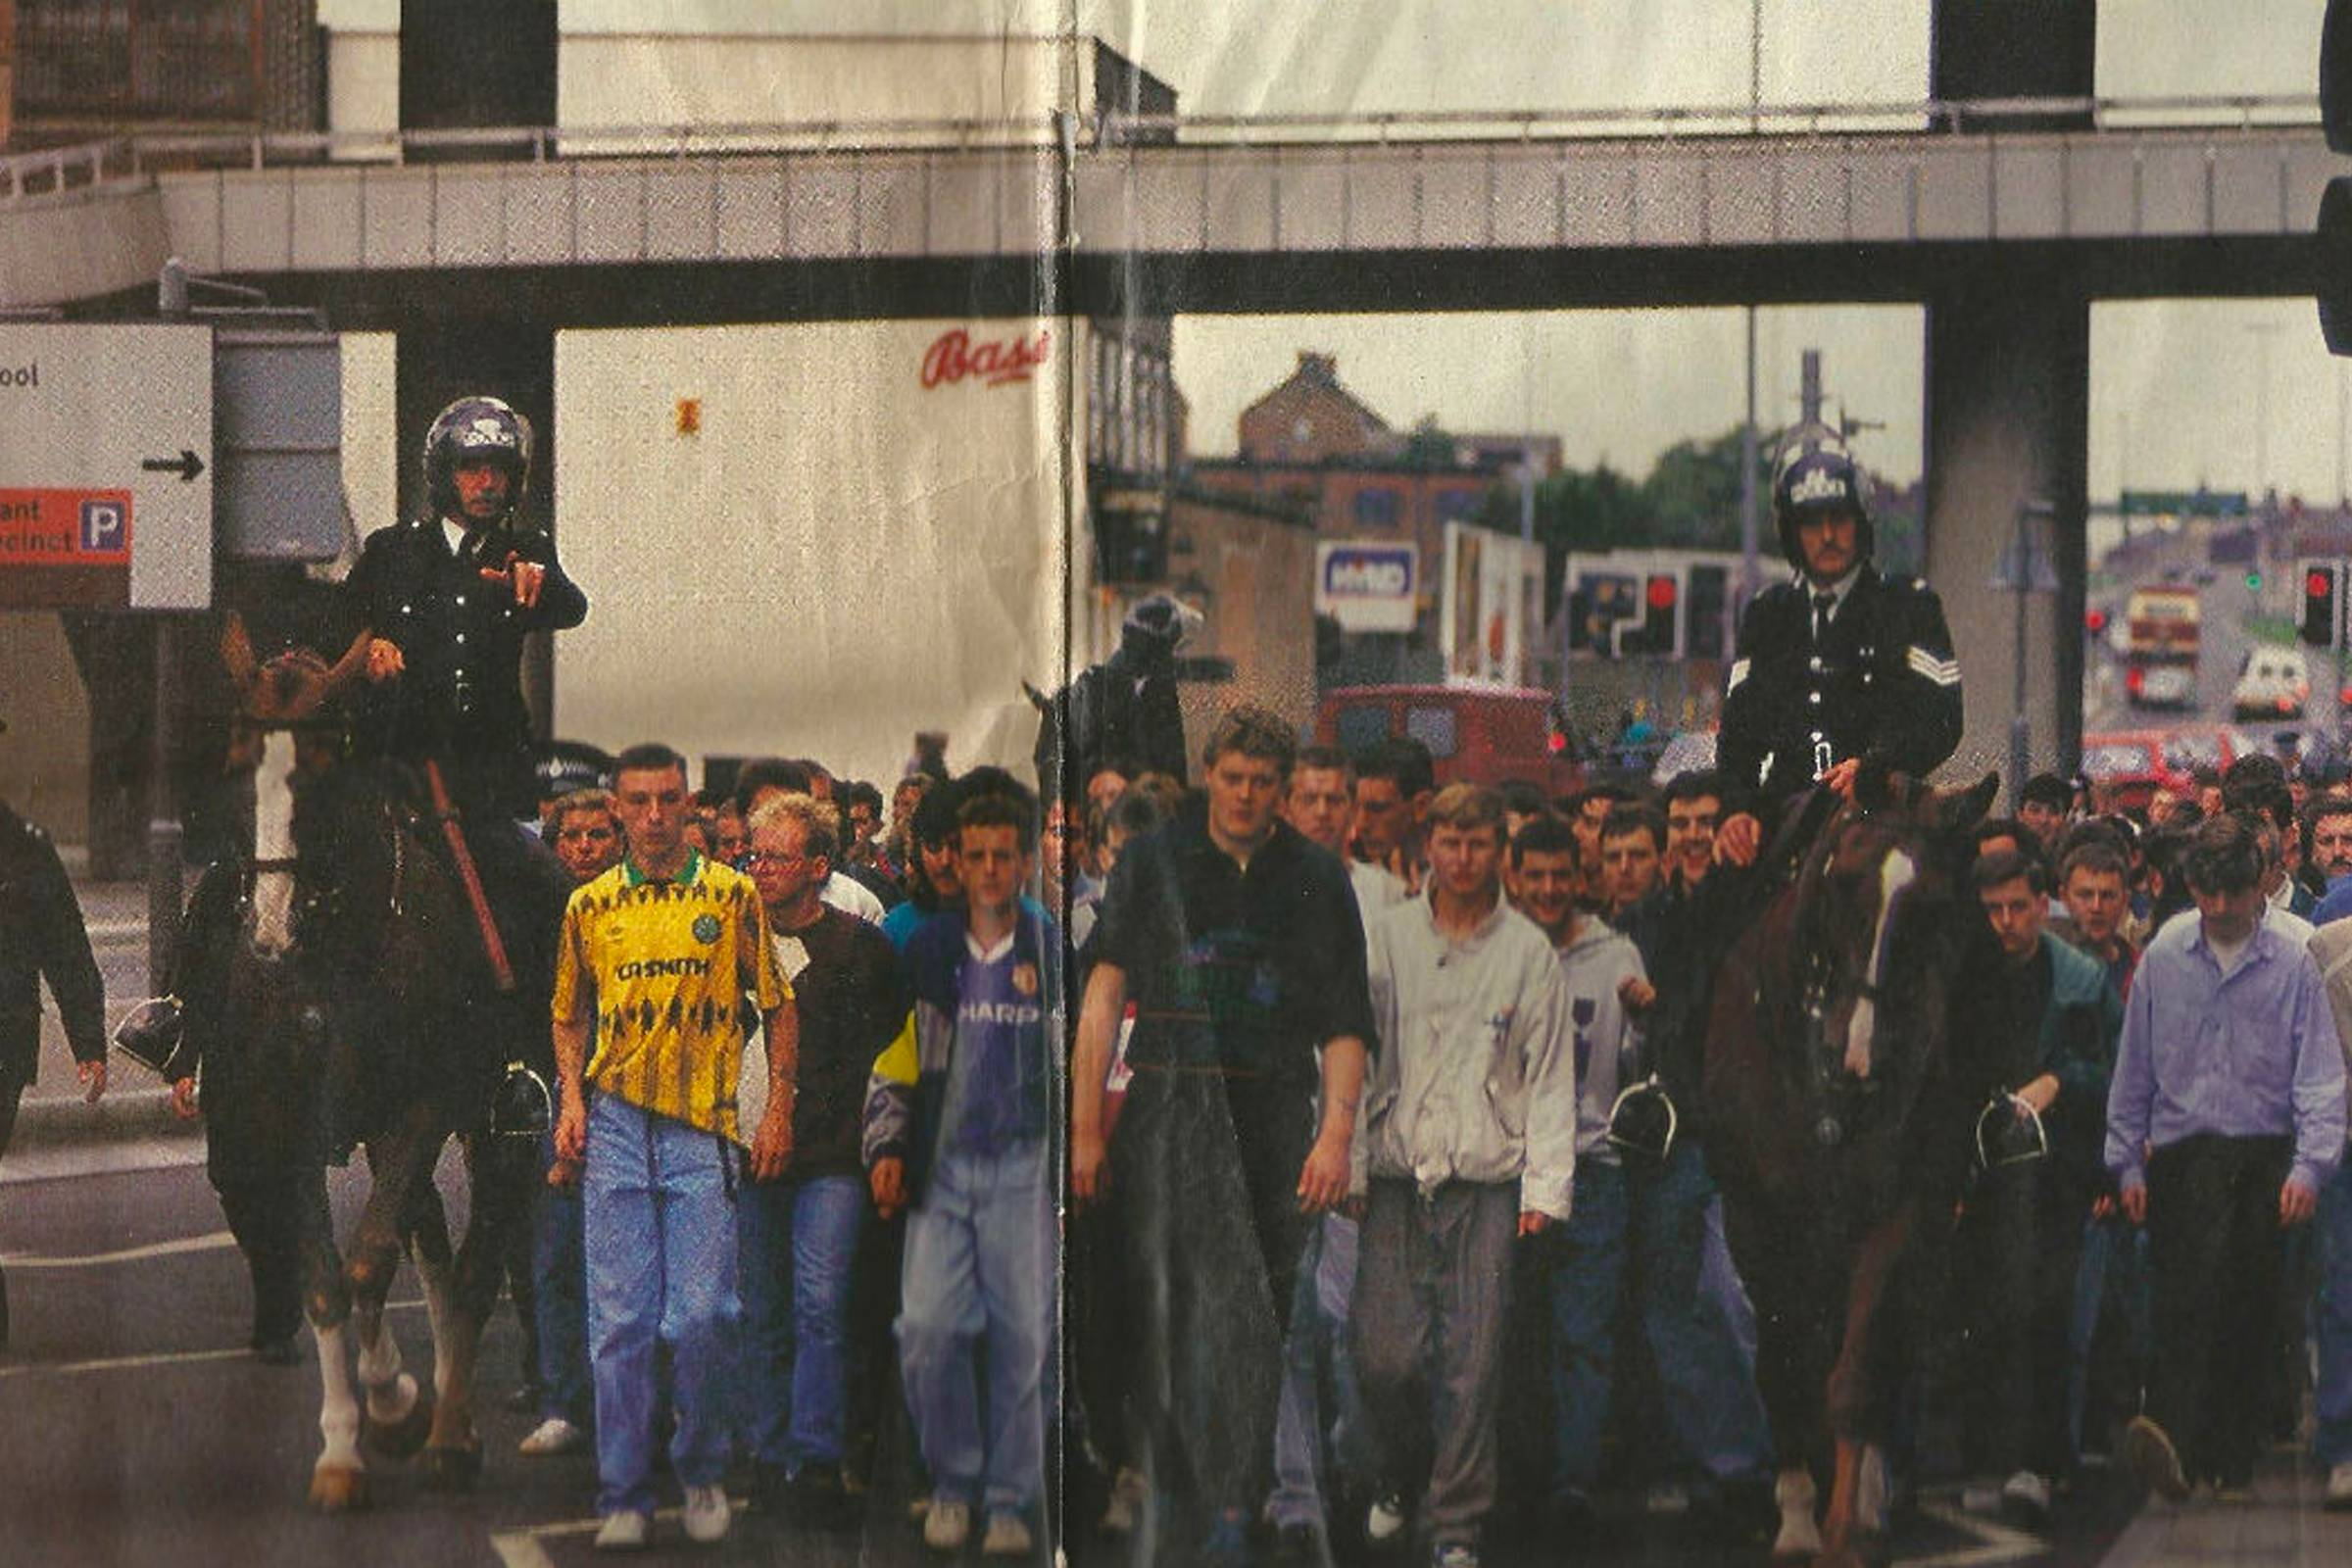 A crowd corralled by police during a Manchester United match at Everton sometime in the 1990s